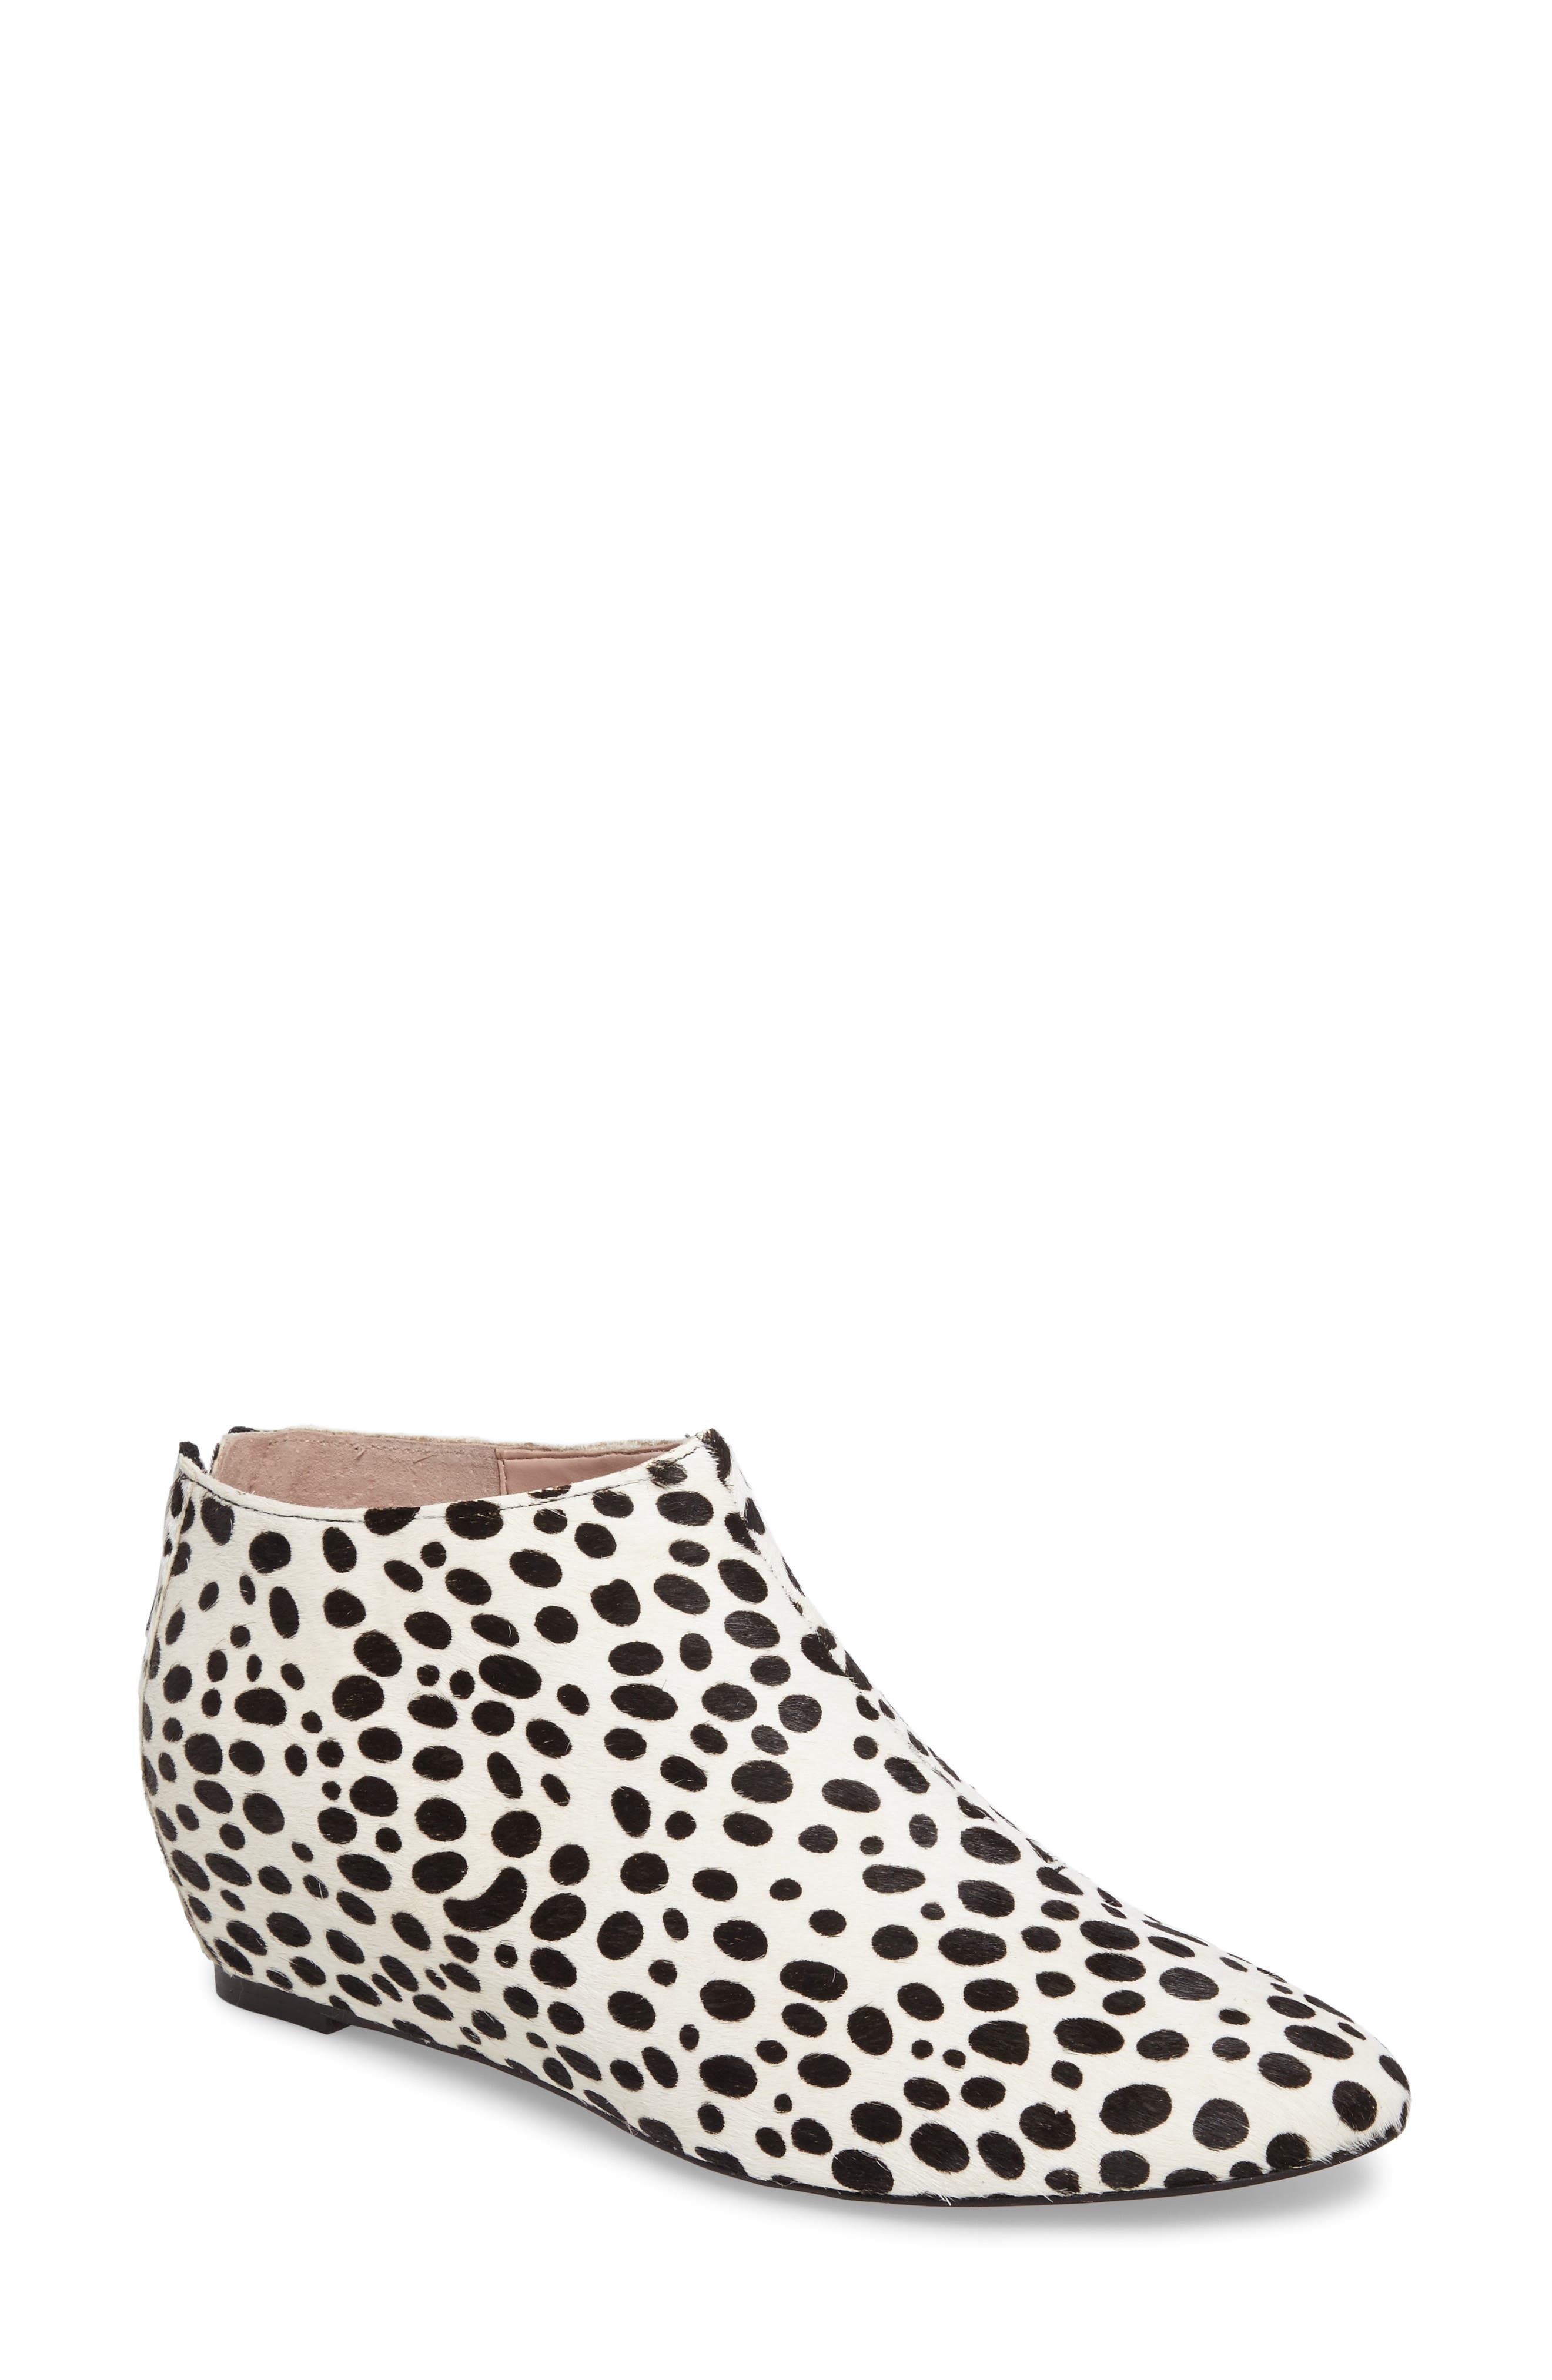 Aves Les Filles Beatrice Ankle Boot,                             Main thumbnail 2, color,